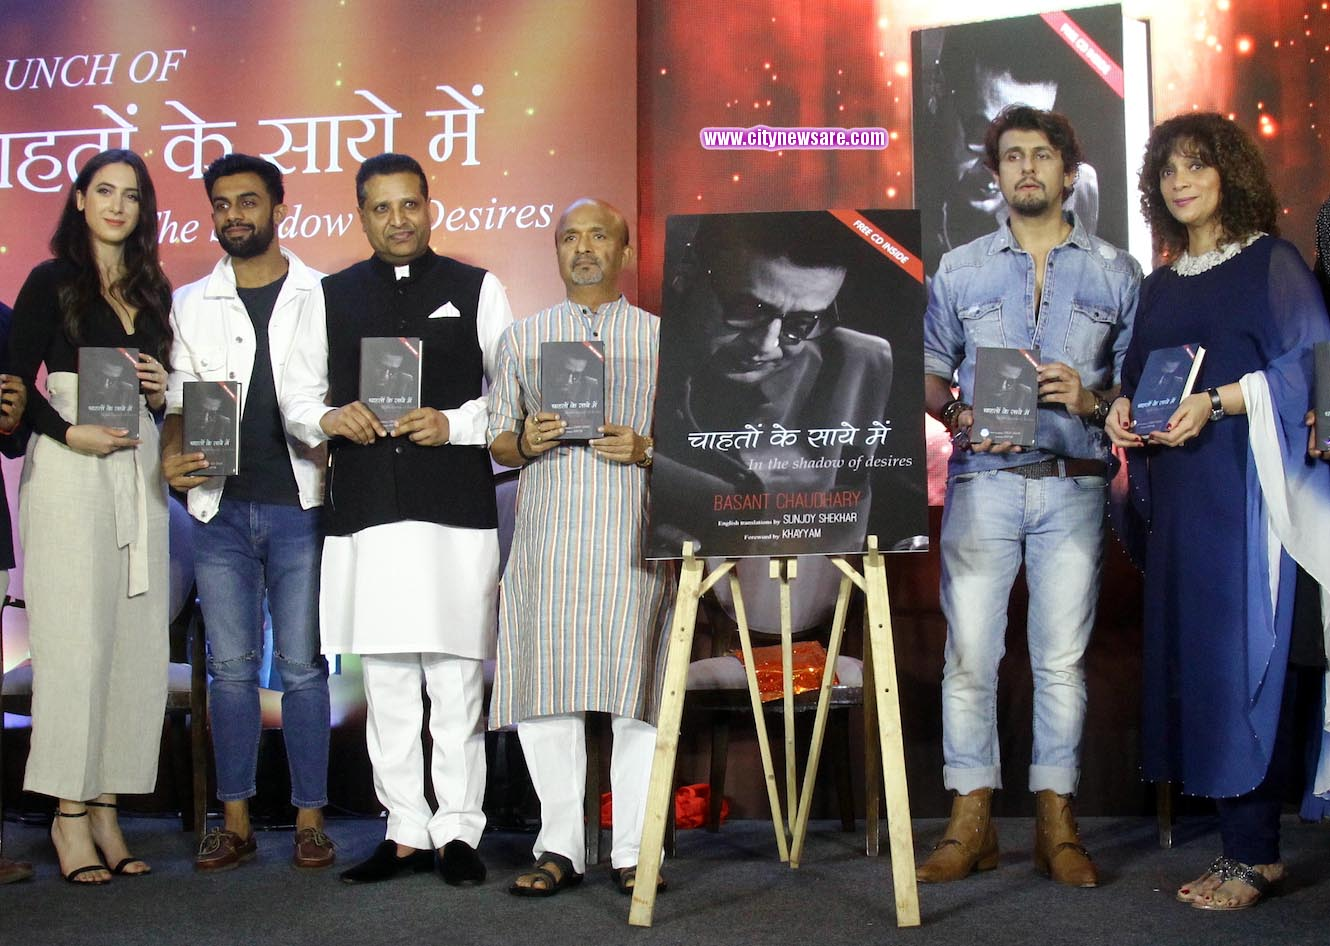 From left Suelen Oliveira, Vishwas Kini, Basant Chaudhary, Sameer, Sonu NIgam and Penaz Masani